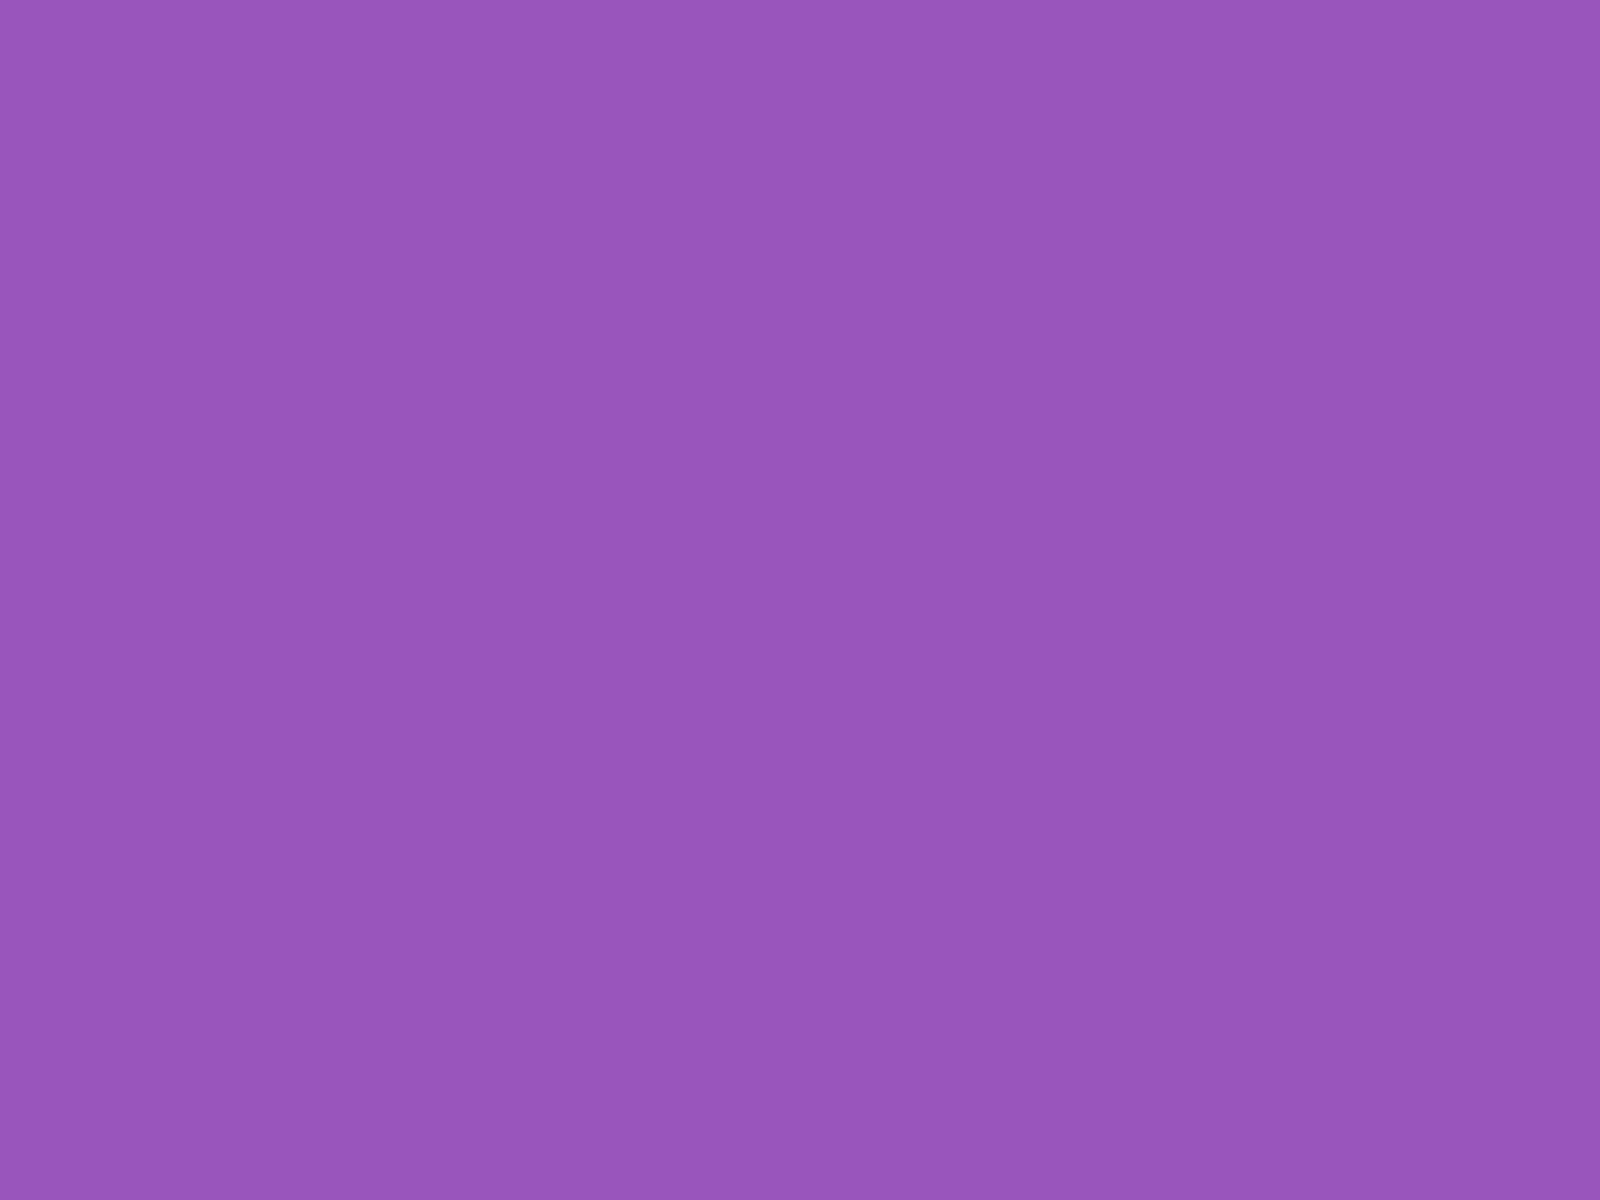 1600x1200 Deep Lilac Solid Color Background